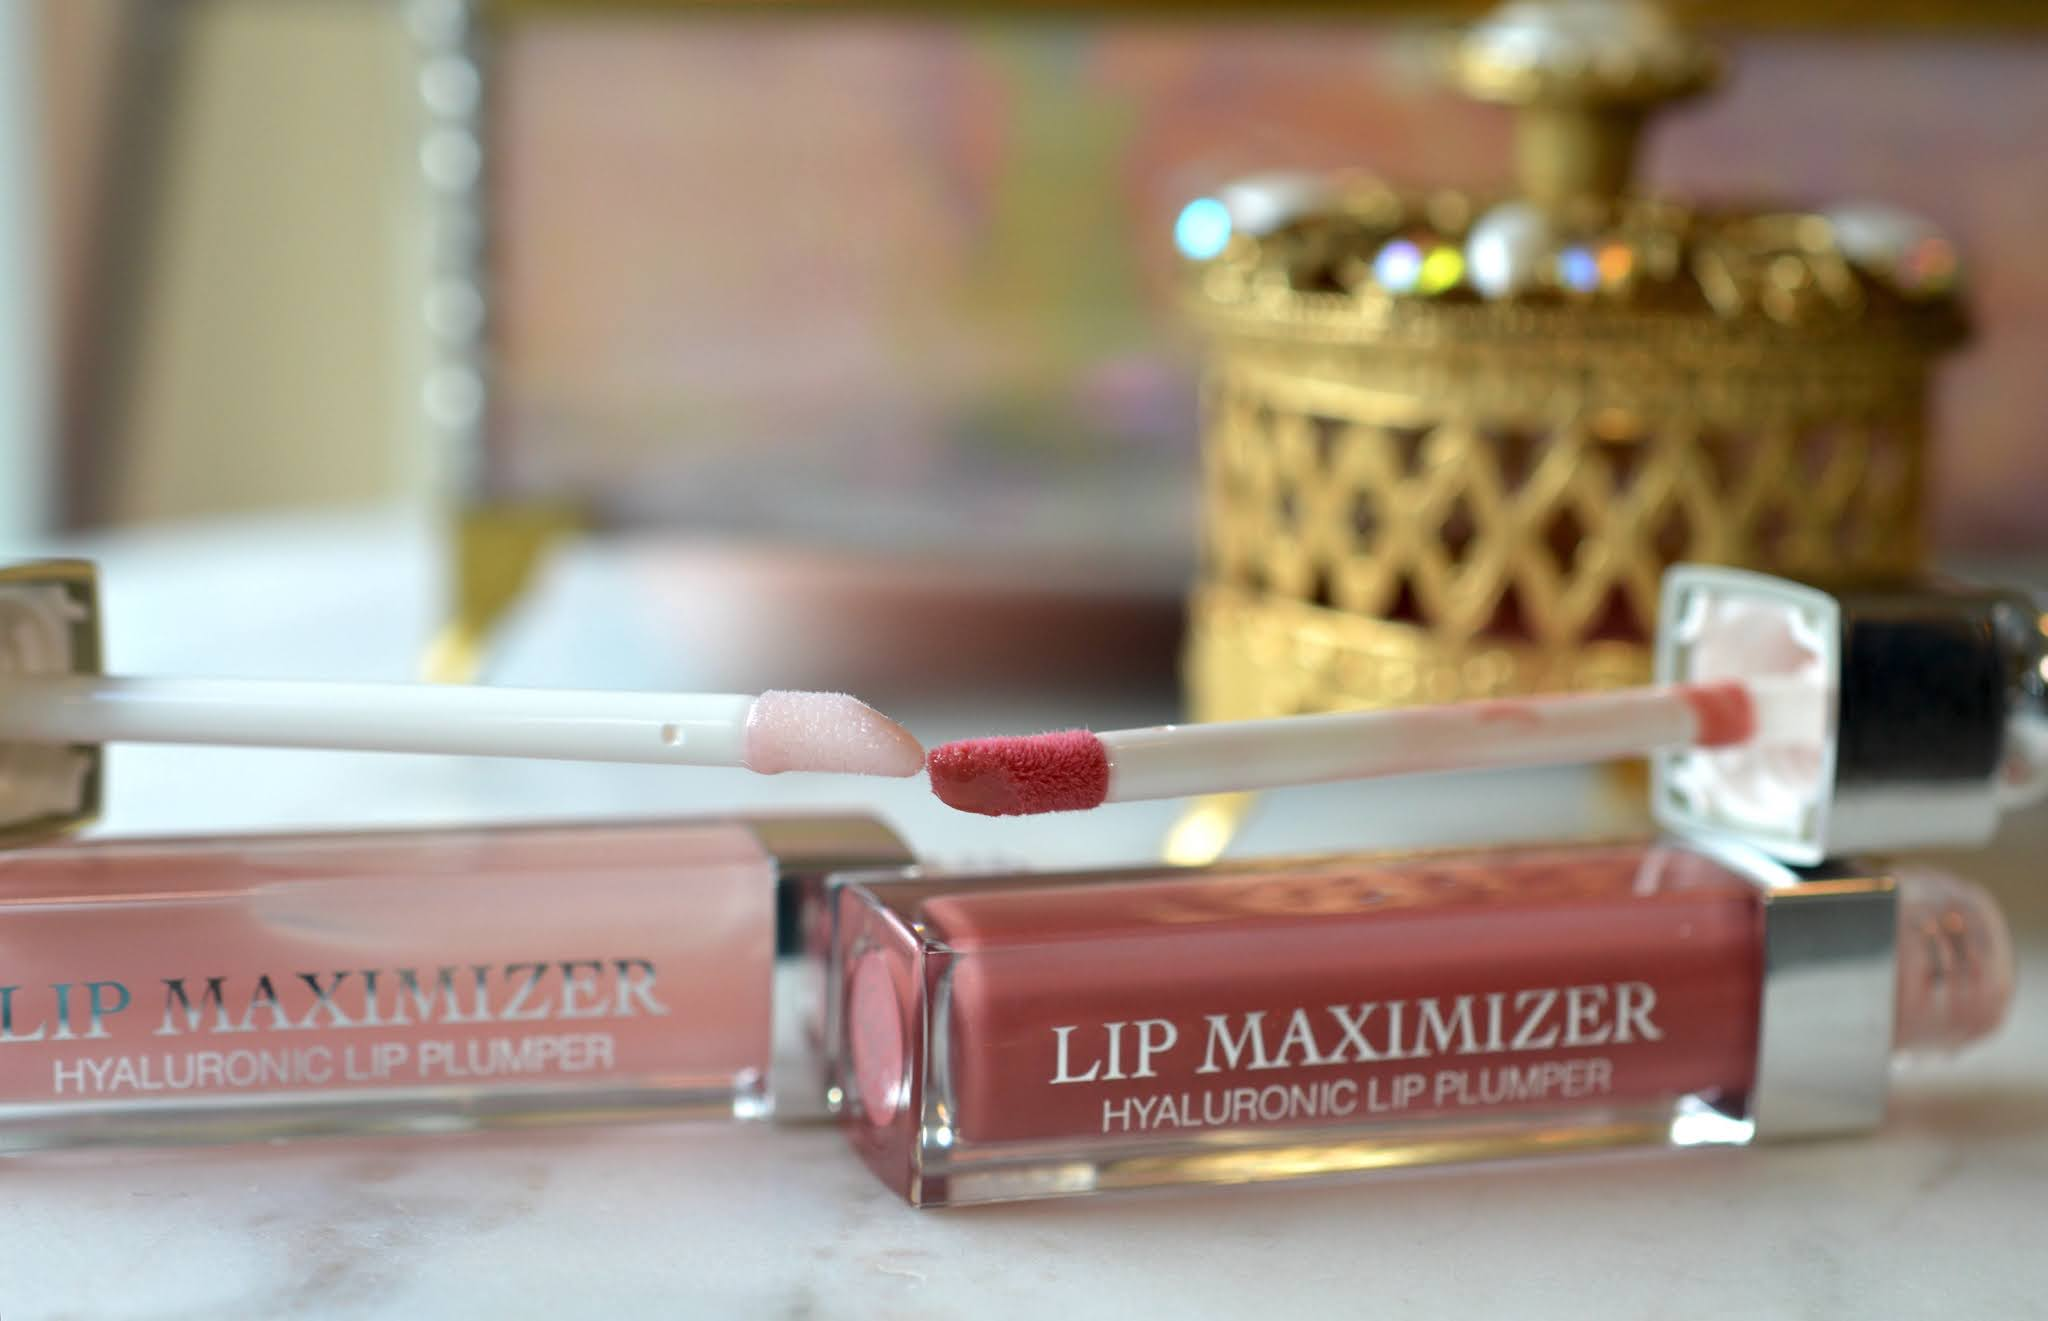 Dior Lip Maximizer Gloss in 001 Light Pink and 012 Rosewood